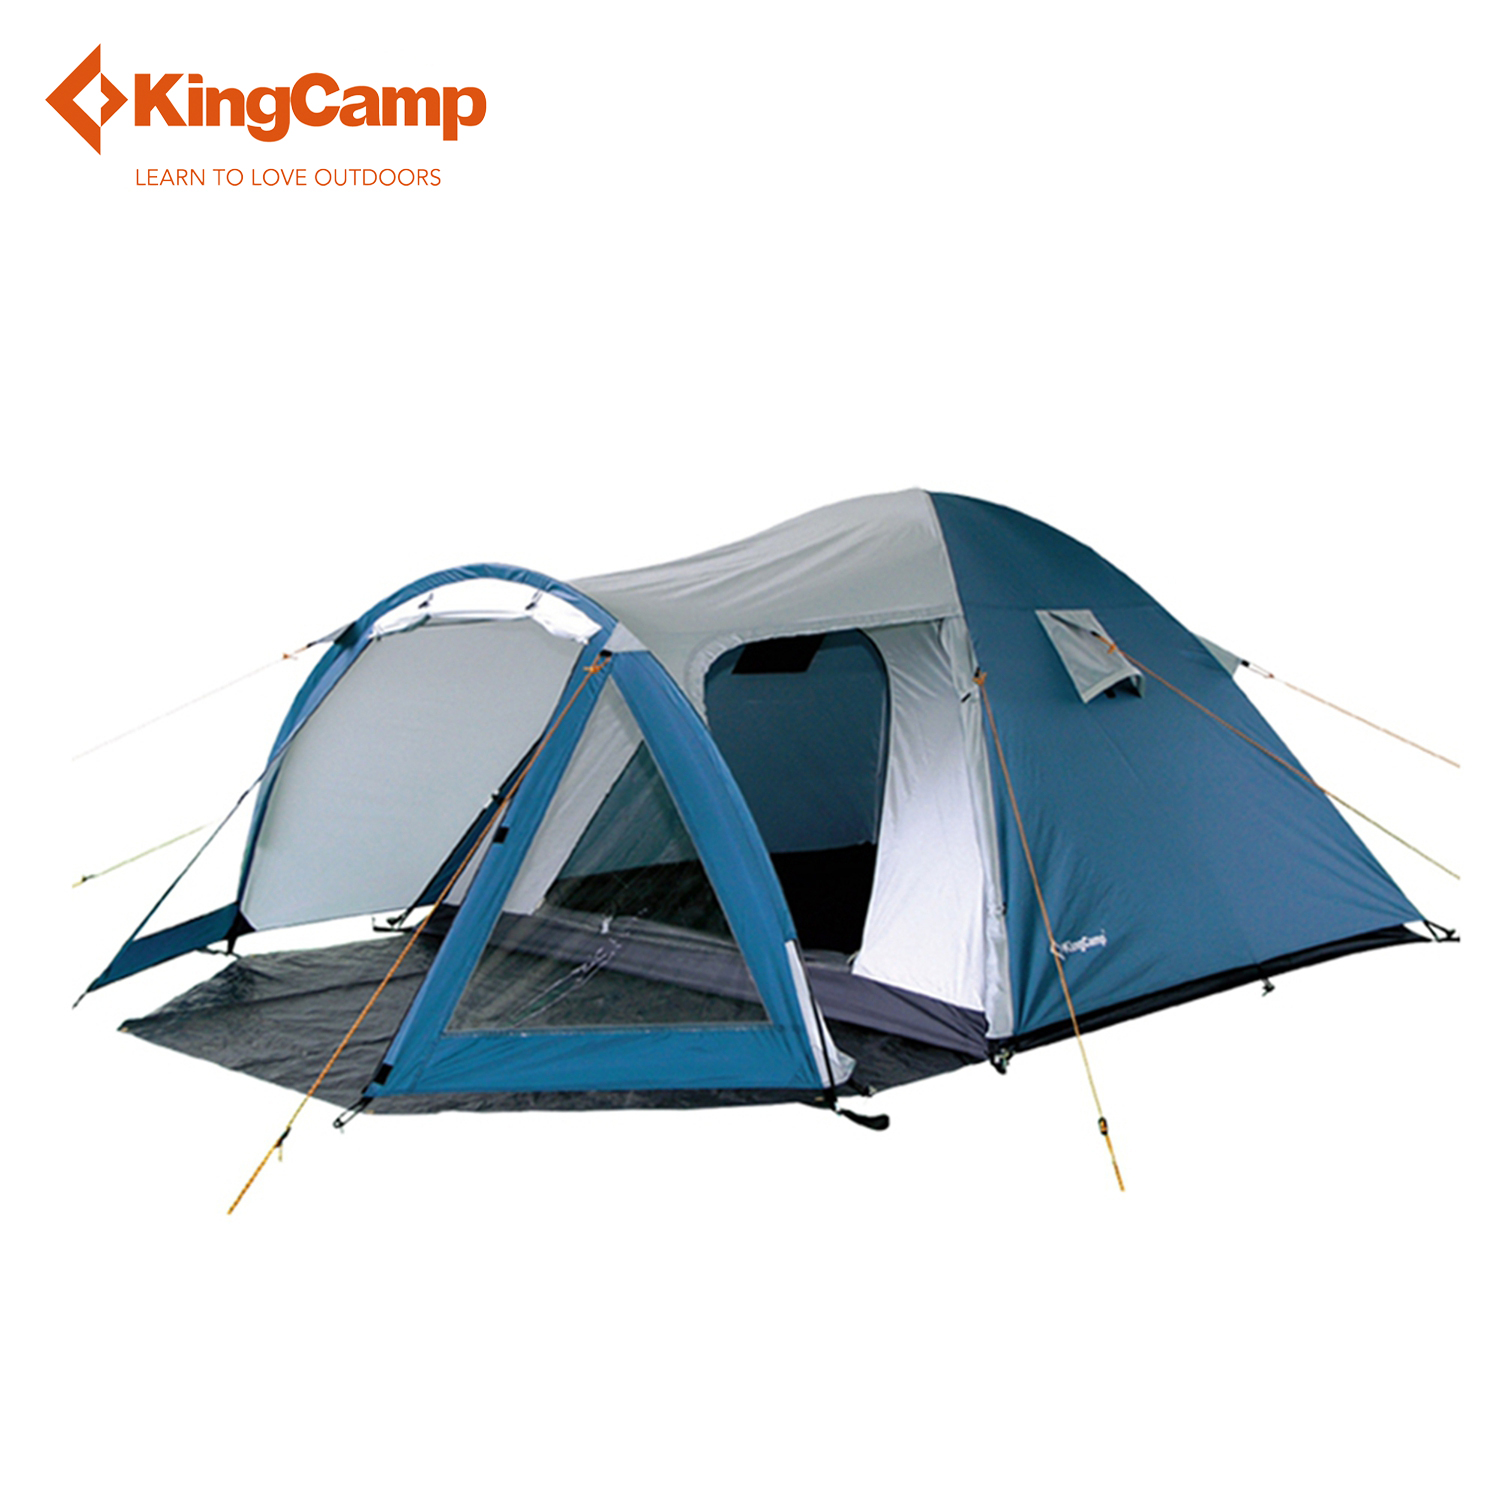 KingCamp Weekend Fire-resistant 3-Person Camping tent waterproof,3-Season outdoor Tent for Family Camping,Backpacking